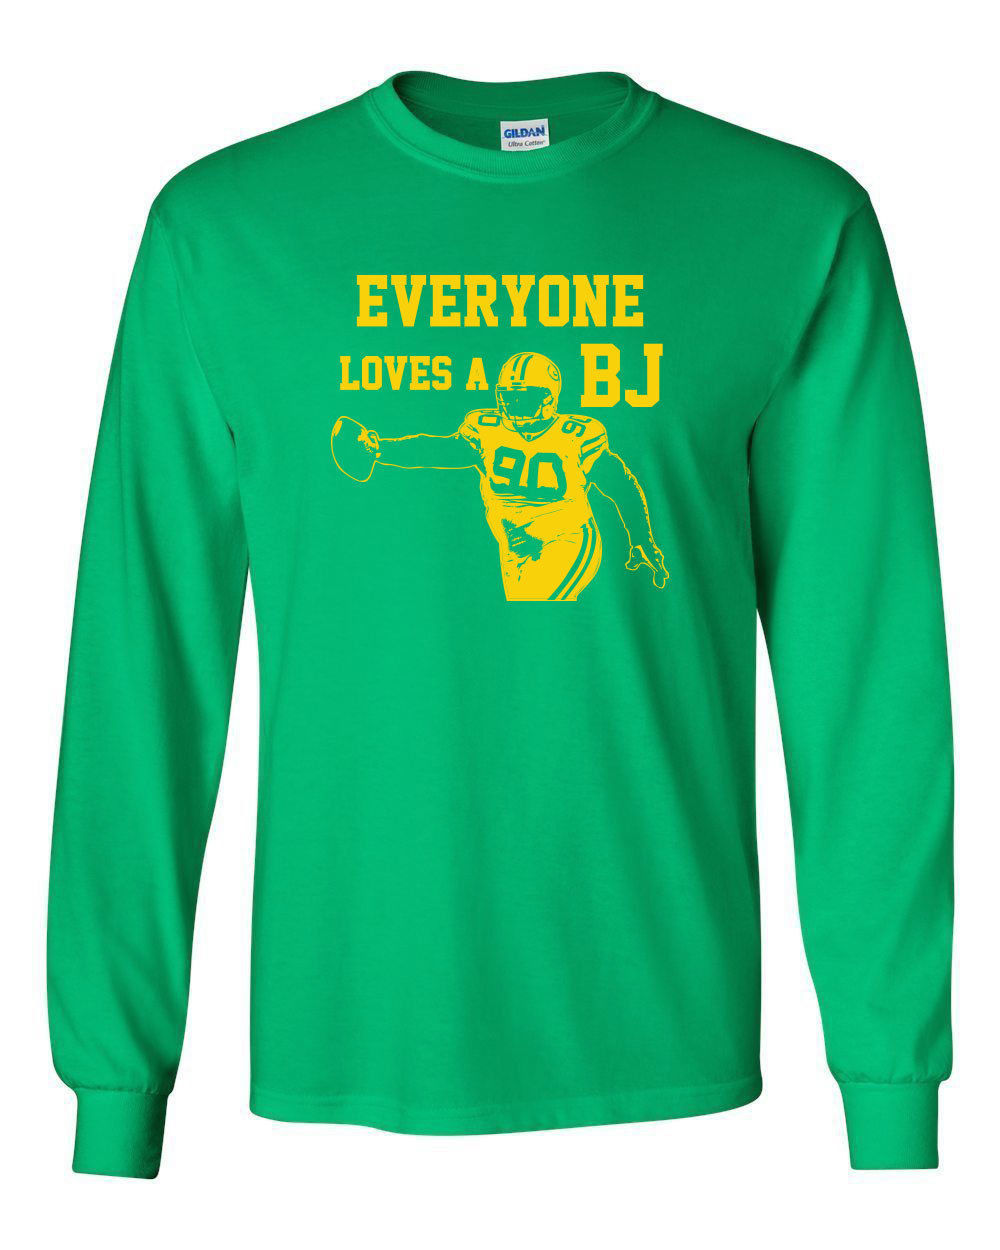 Primary image for 070 Everyone Loves A BJ Long Sleeve Shirt football green bay defense playoffs